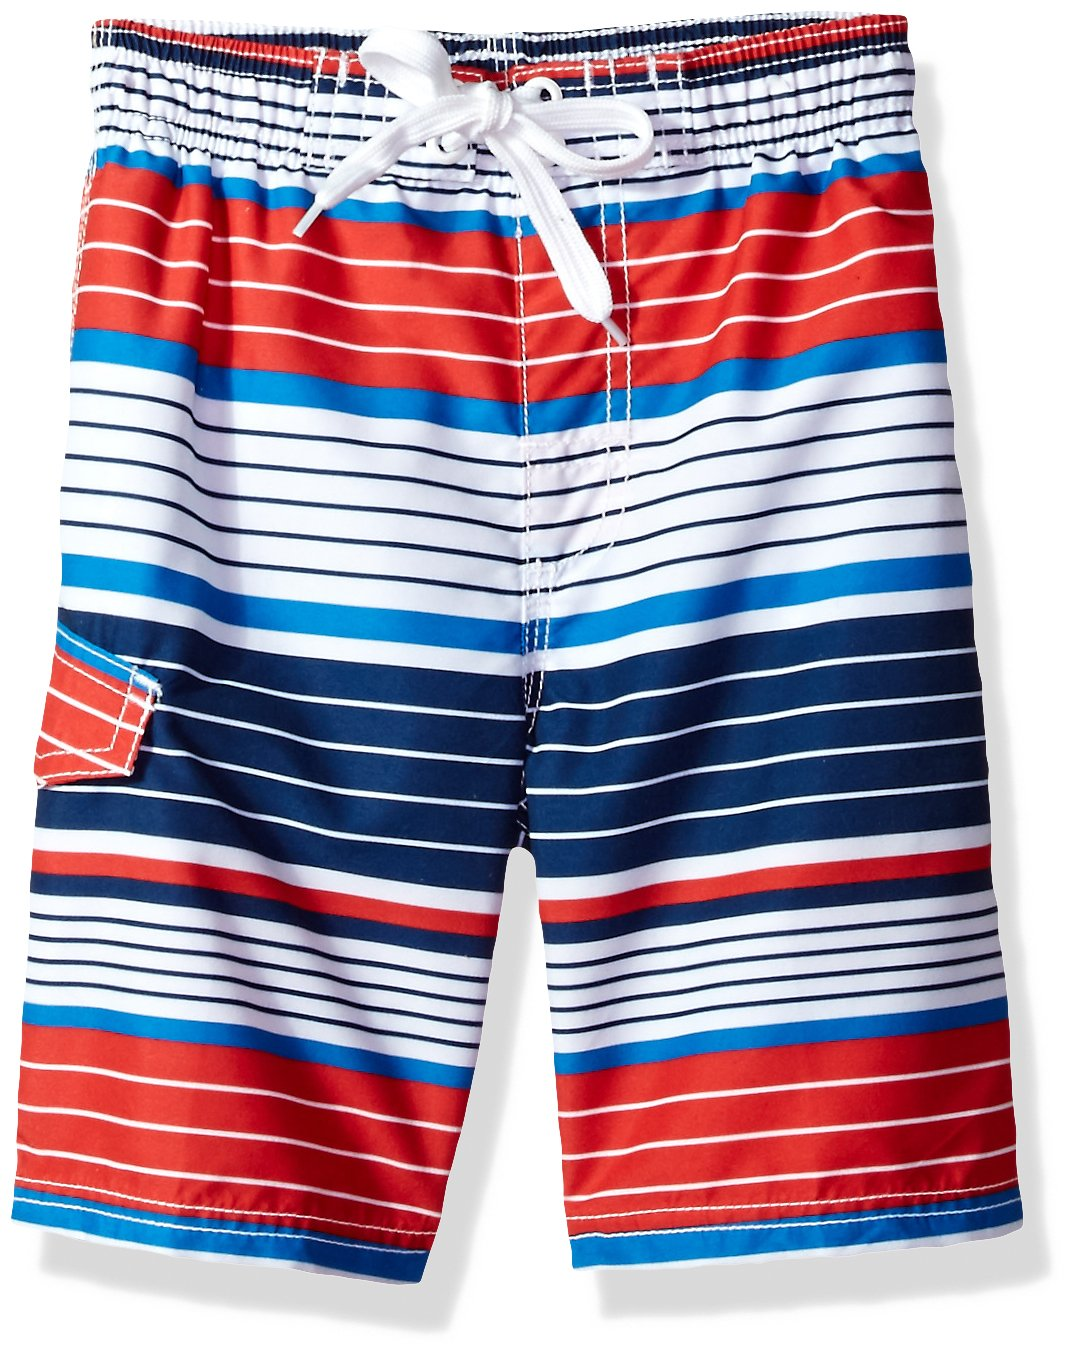 Kanu Surf Big Boys' Blake Stripe Quick Dry Beach Board Shorts Swim Trunk, Navy/Red, Small (8)